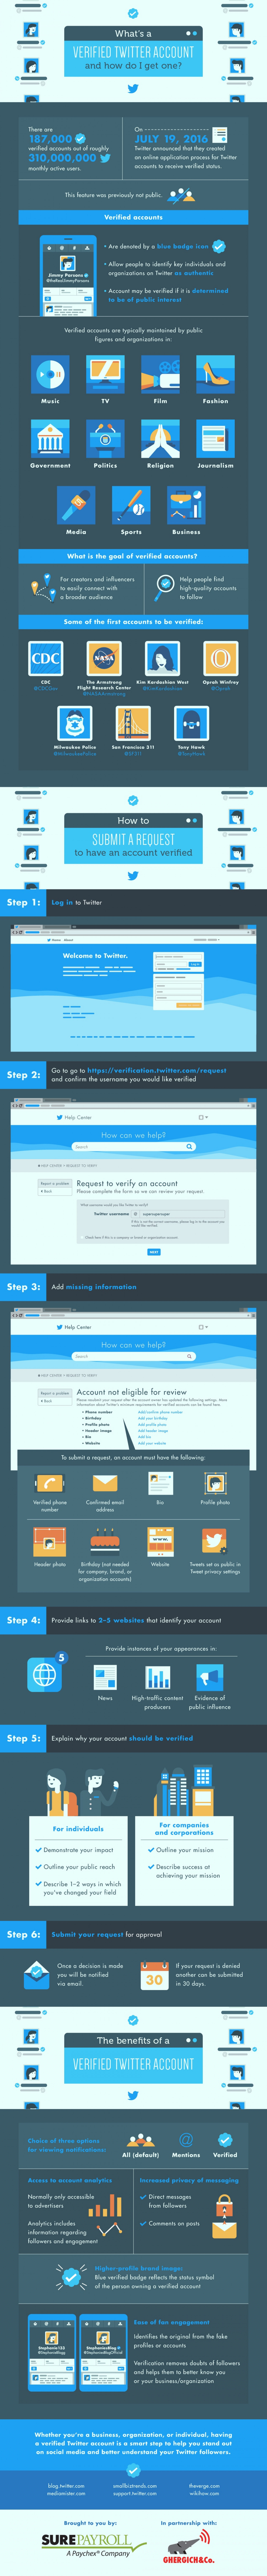 What's a Verified Twitter Account and How do I Get One? Infographic